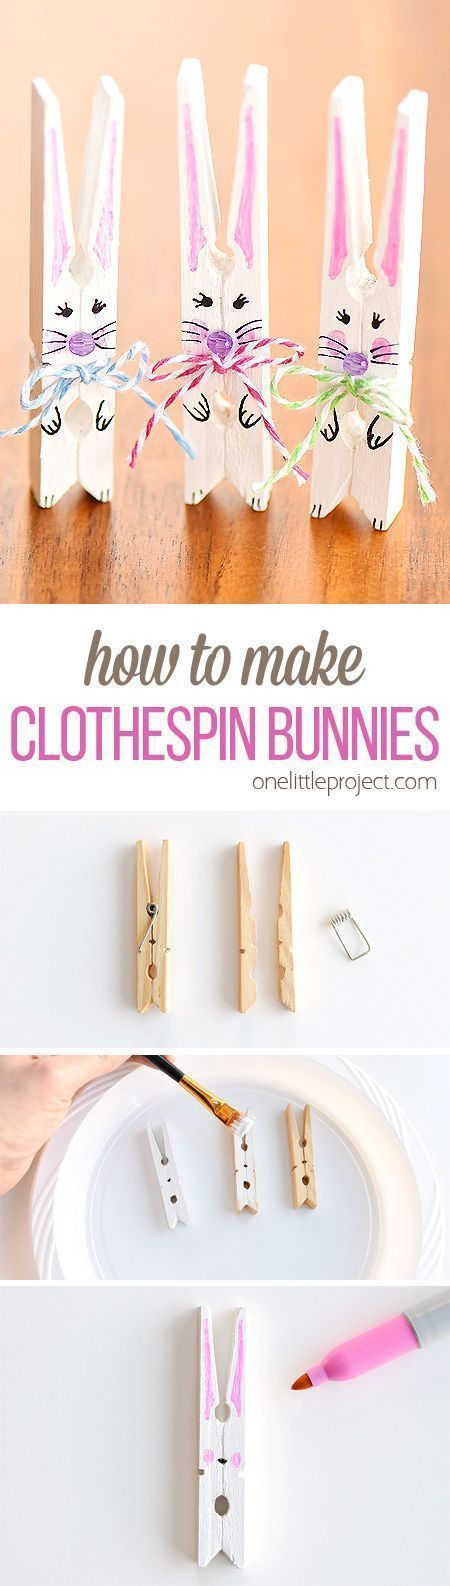 Photo of How to Make Clothespin Bunnies | Clothespin Easter Bunny Craft